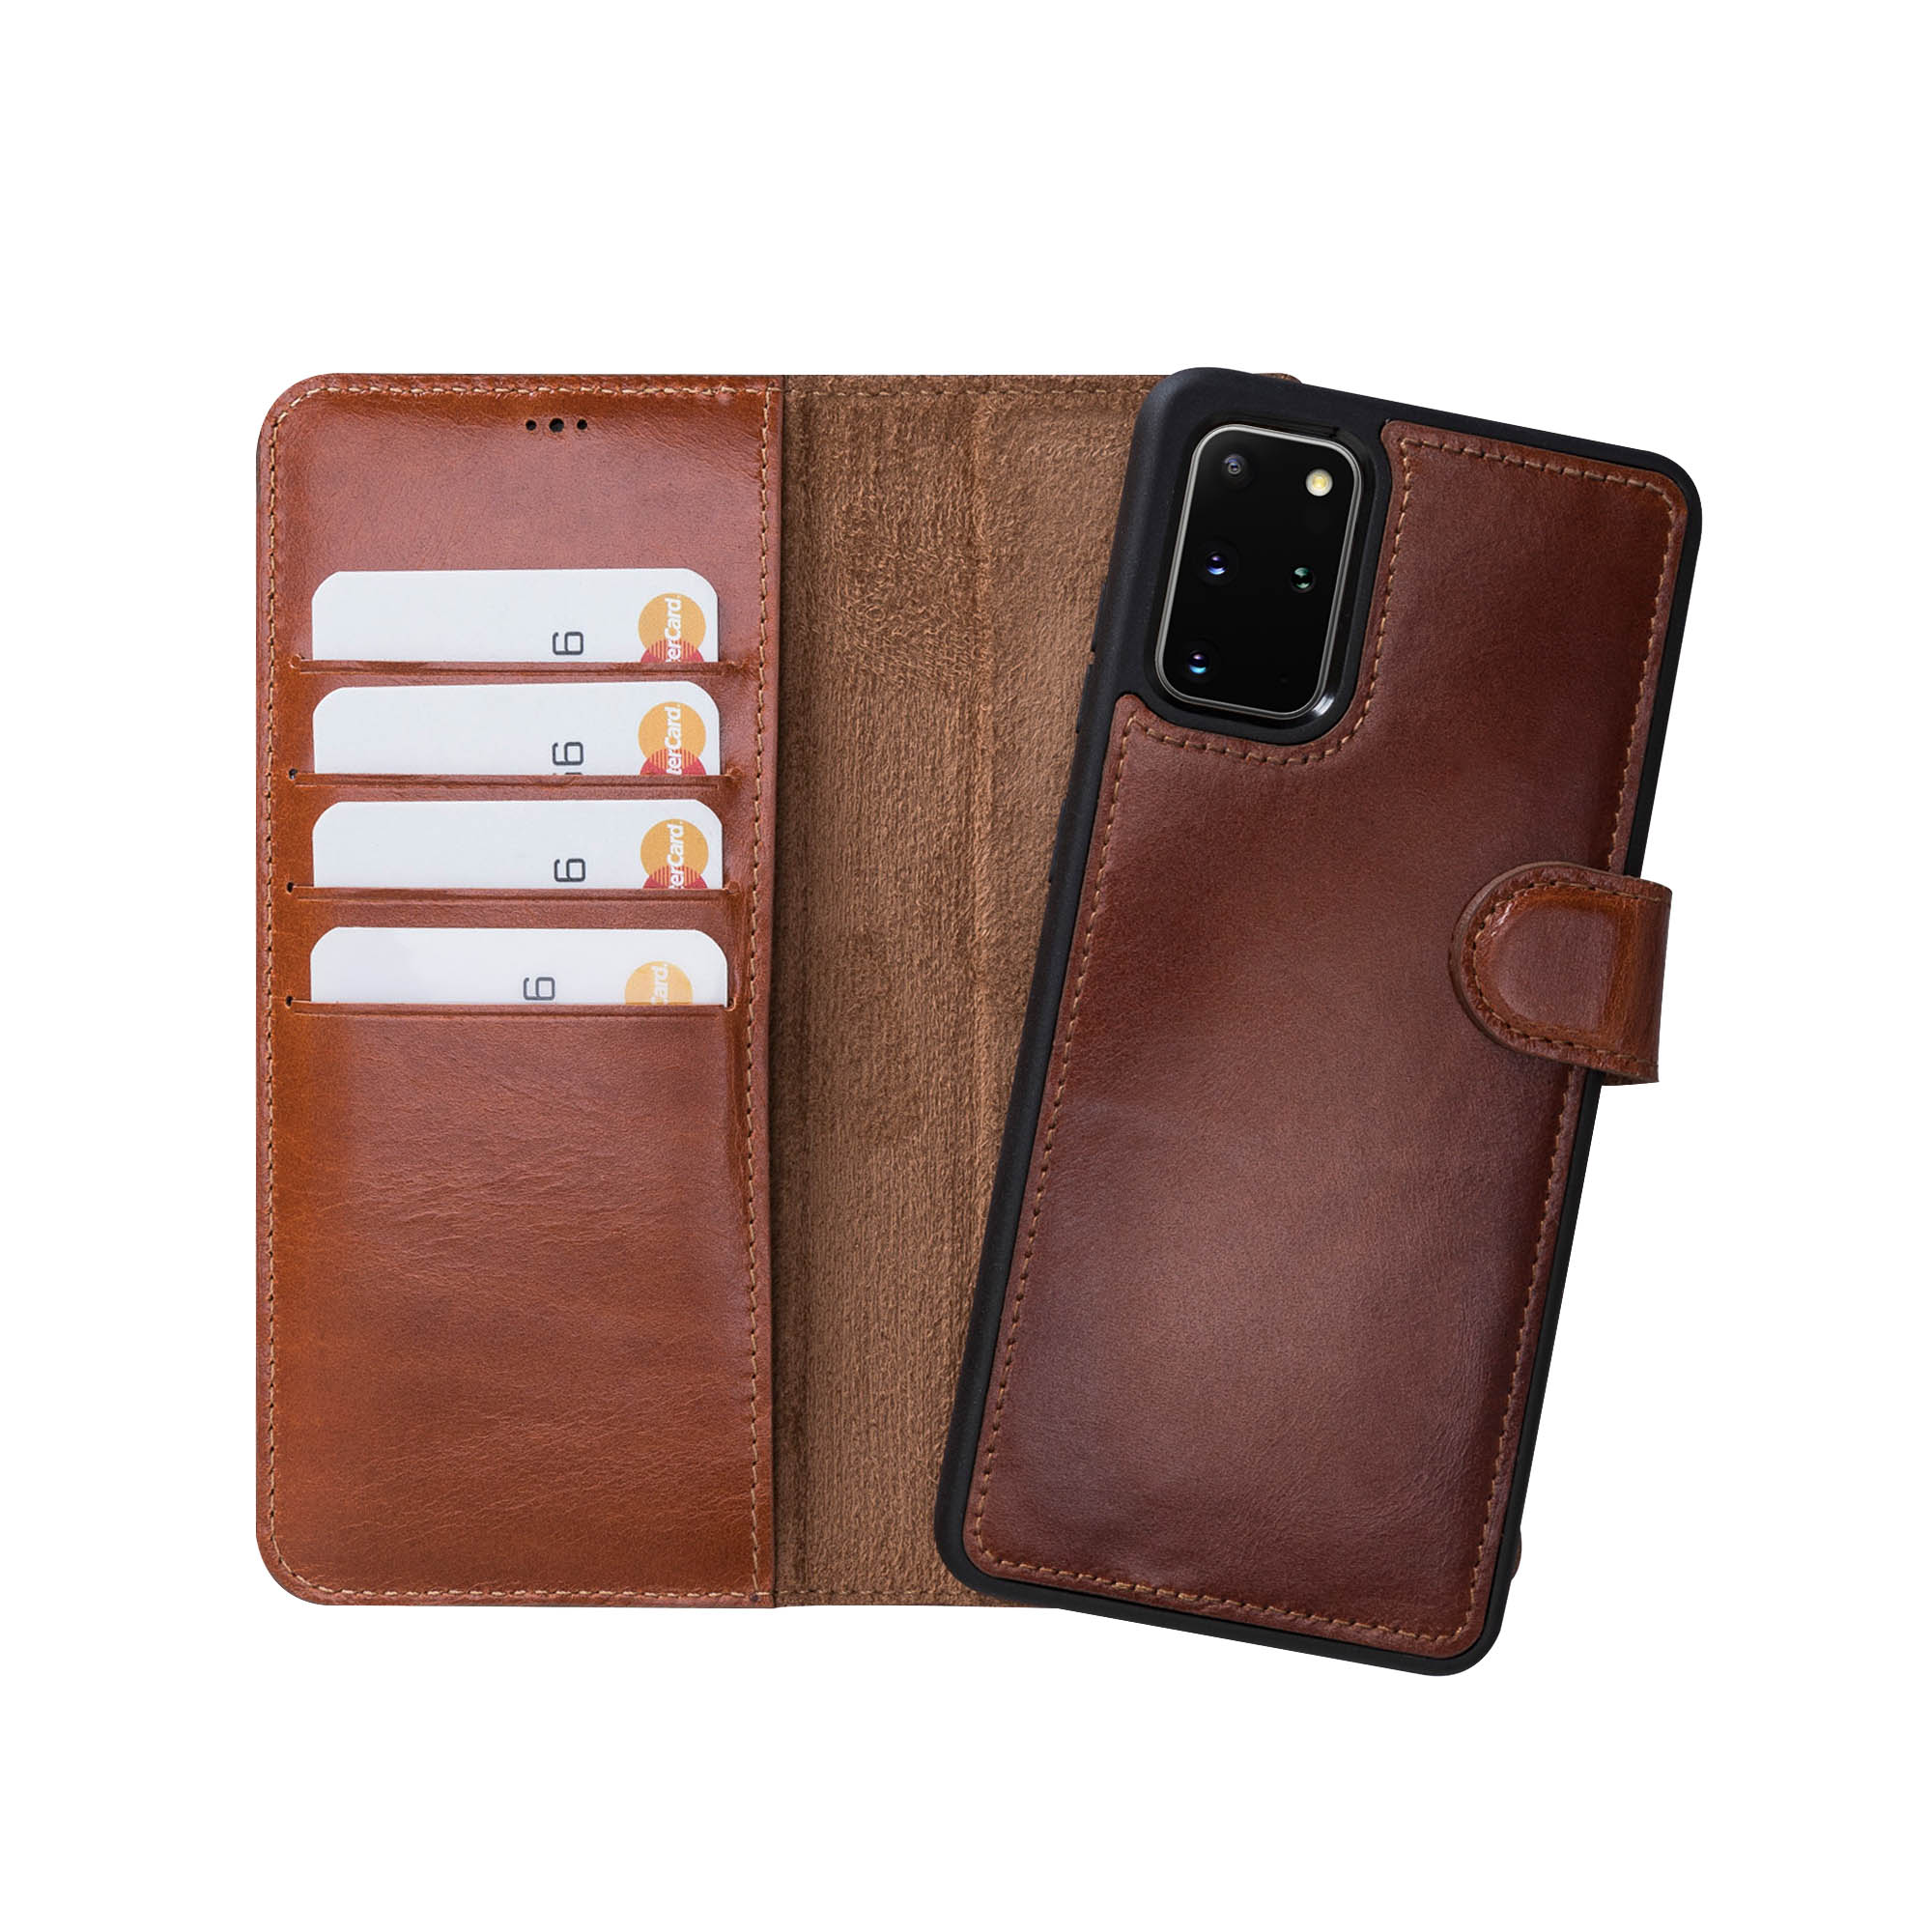 "Magic Magnetic Detachable Leather Wallet Case for Samsung Galaxy S20 Plus (6.7"") - EFFECT BROWN"